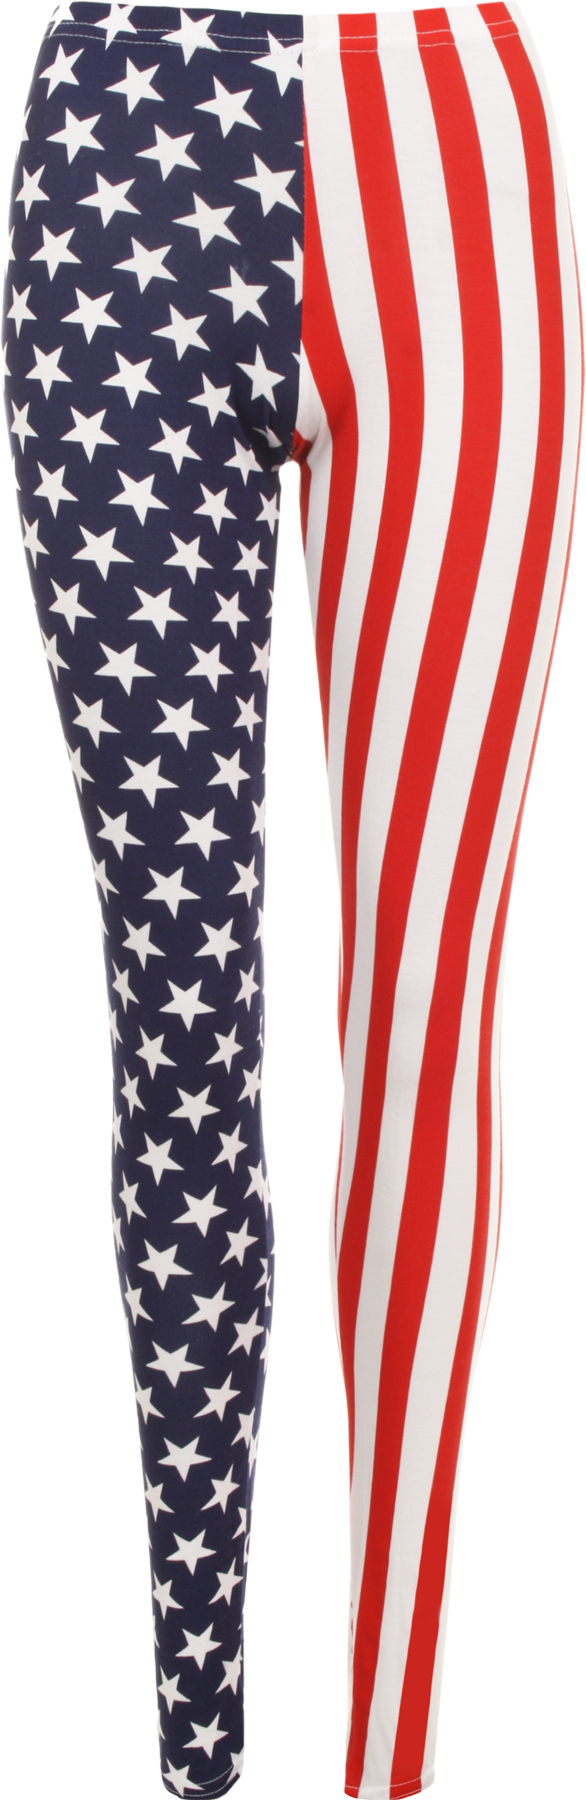 Women's Red White Blue Stripes Leggings. results. Category: Women's Leggings. All Products Women's Fashion Women's Clothing. Women's Leggings. July 4th USA Red White Blue Stars and Stripes Leggings. $ 15% Off with code ZFRIYAYDEALZ. White Stars, Red Stripes and Blue .